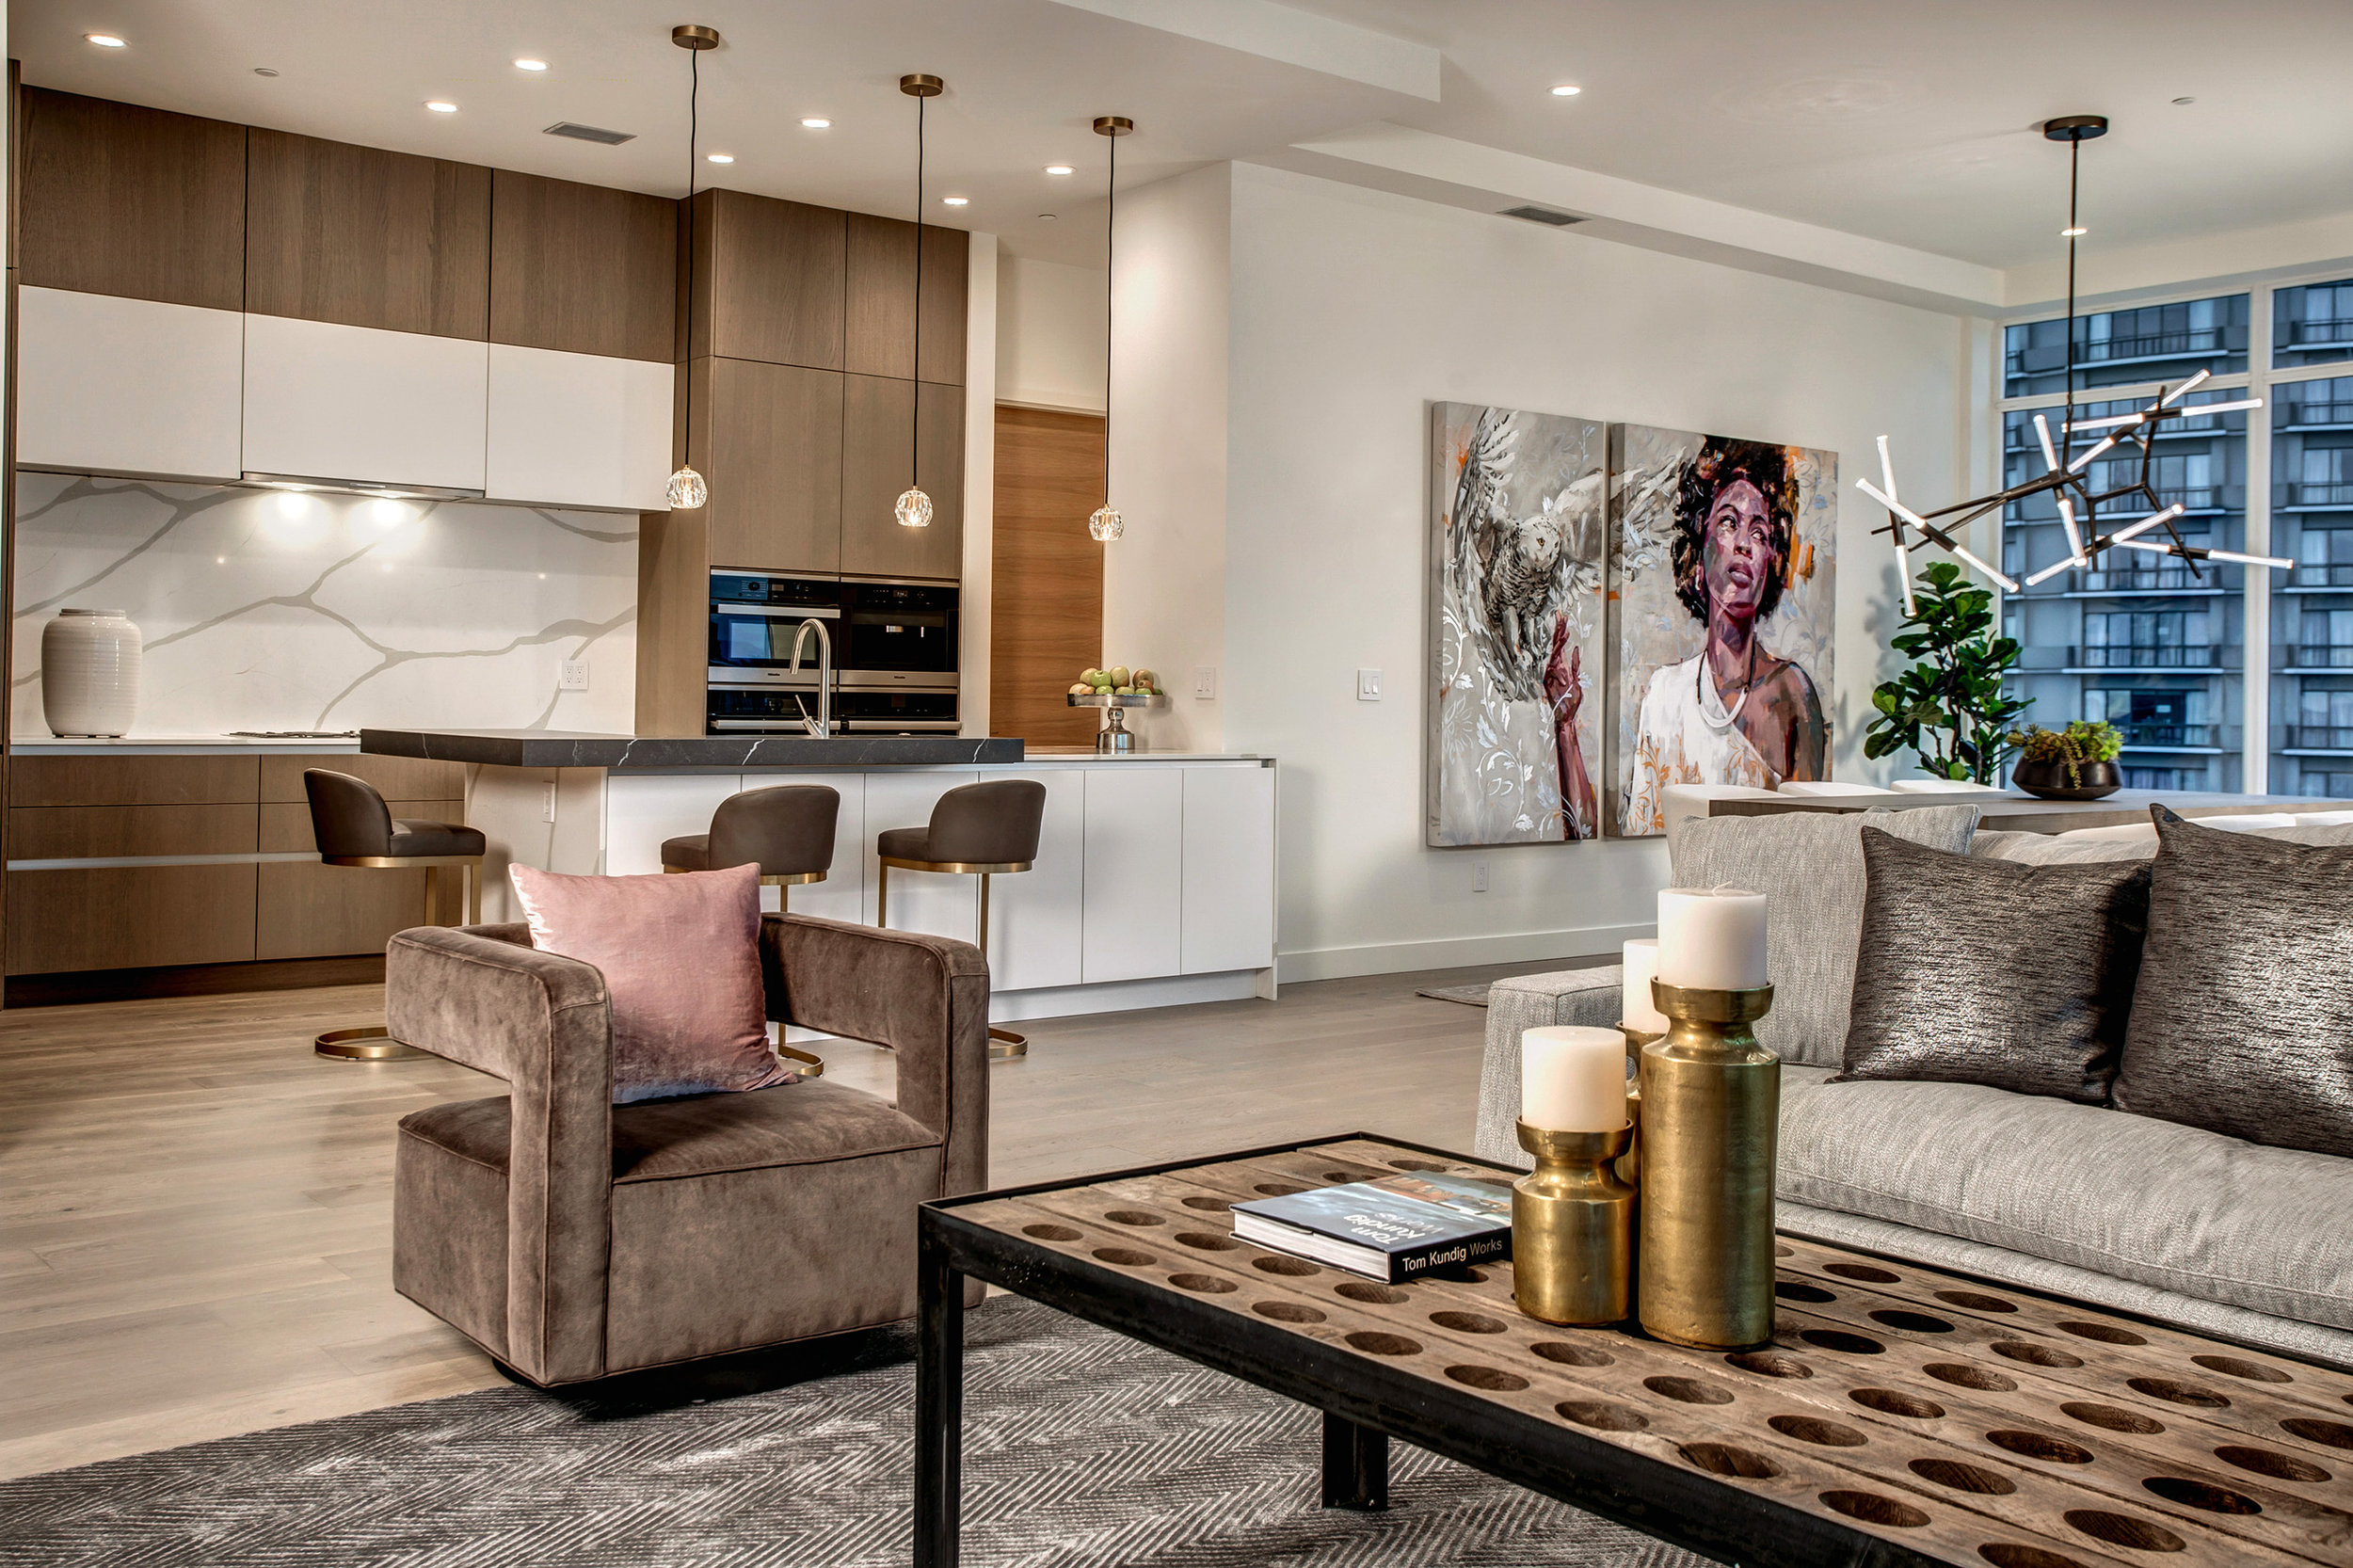 View of the open living, dining, and kitchen area. Modern contemporary design and details throughout.